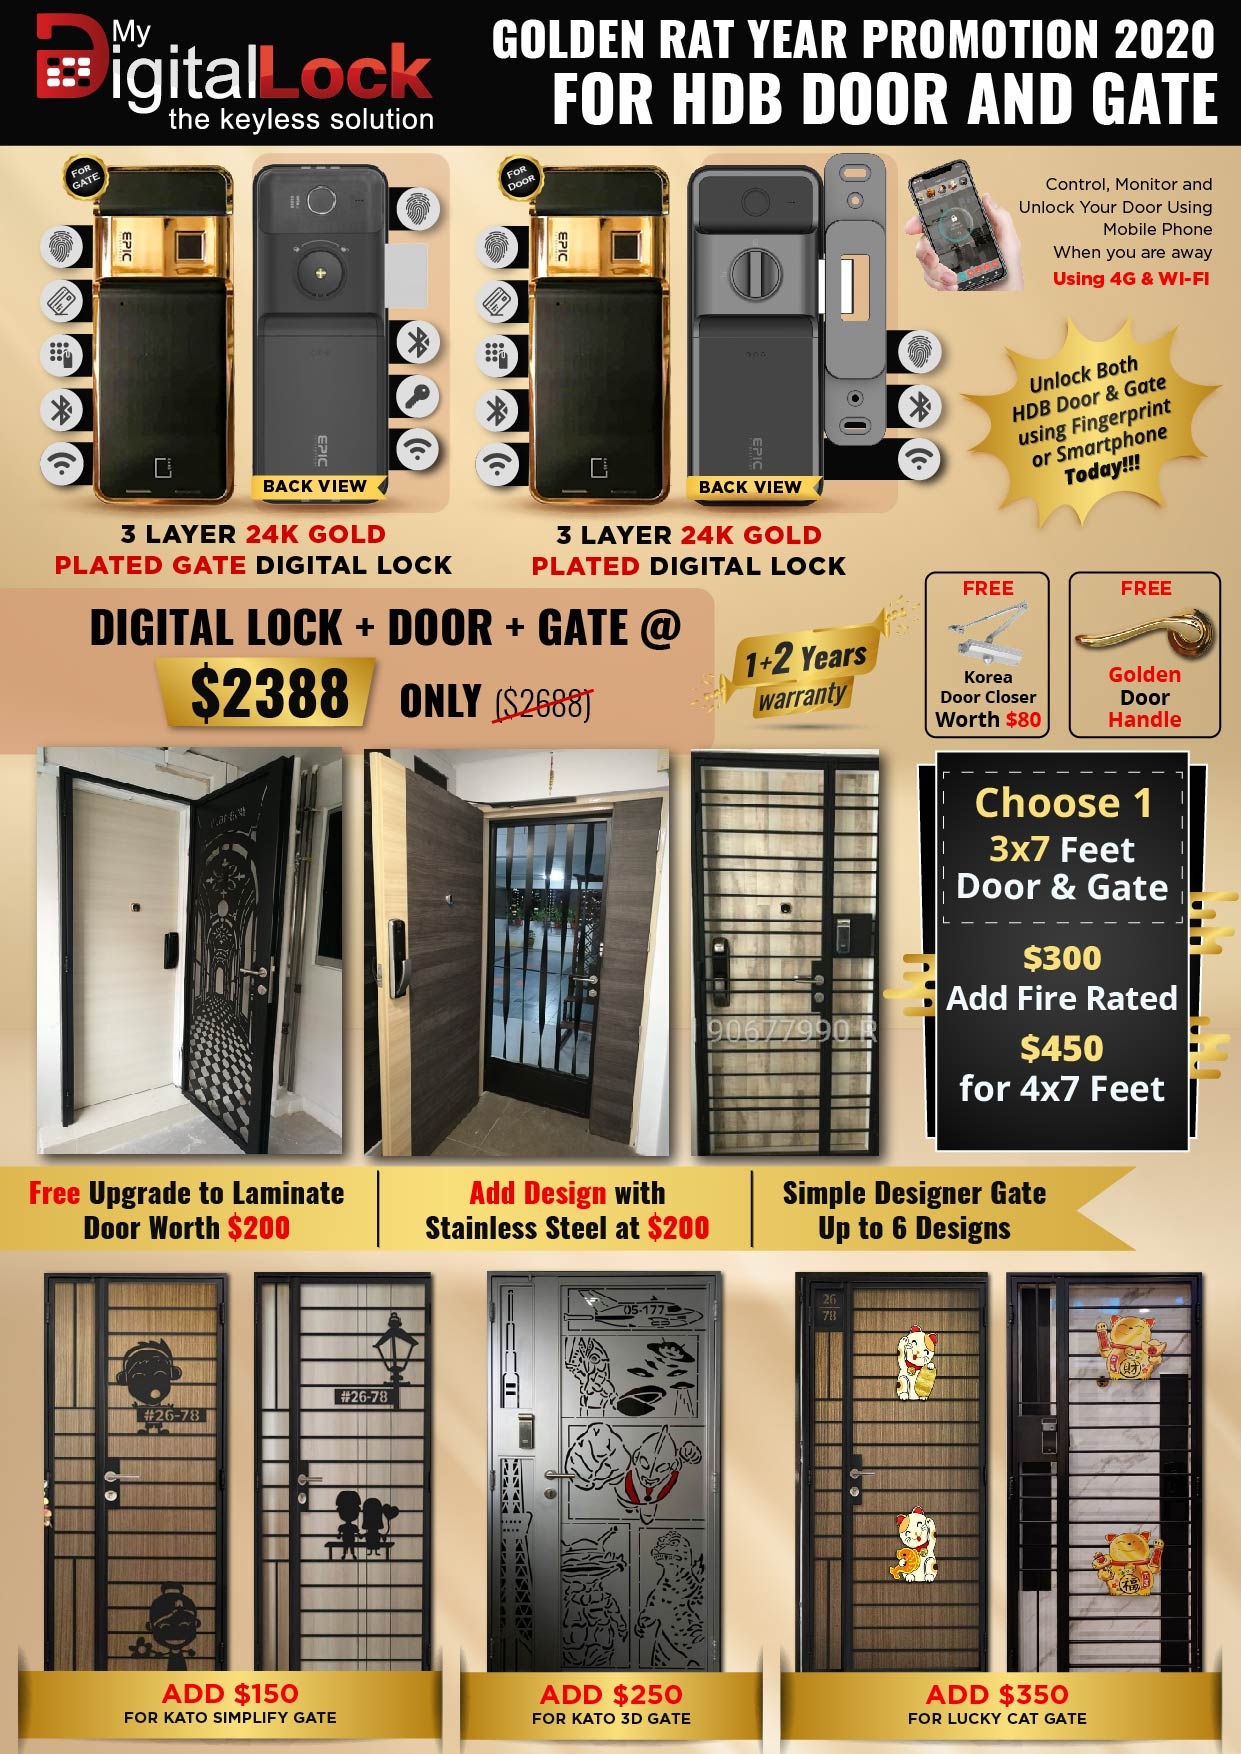 Golden Rat Year HDB Door and Gate Promotion with 24K Gold Plated Digital Lock